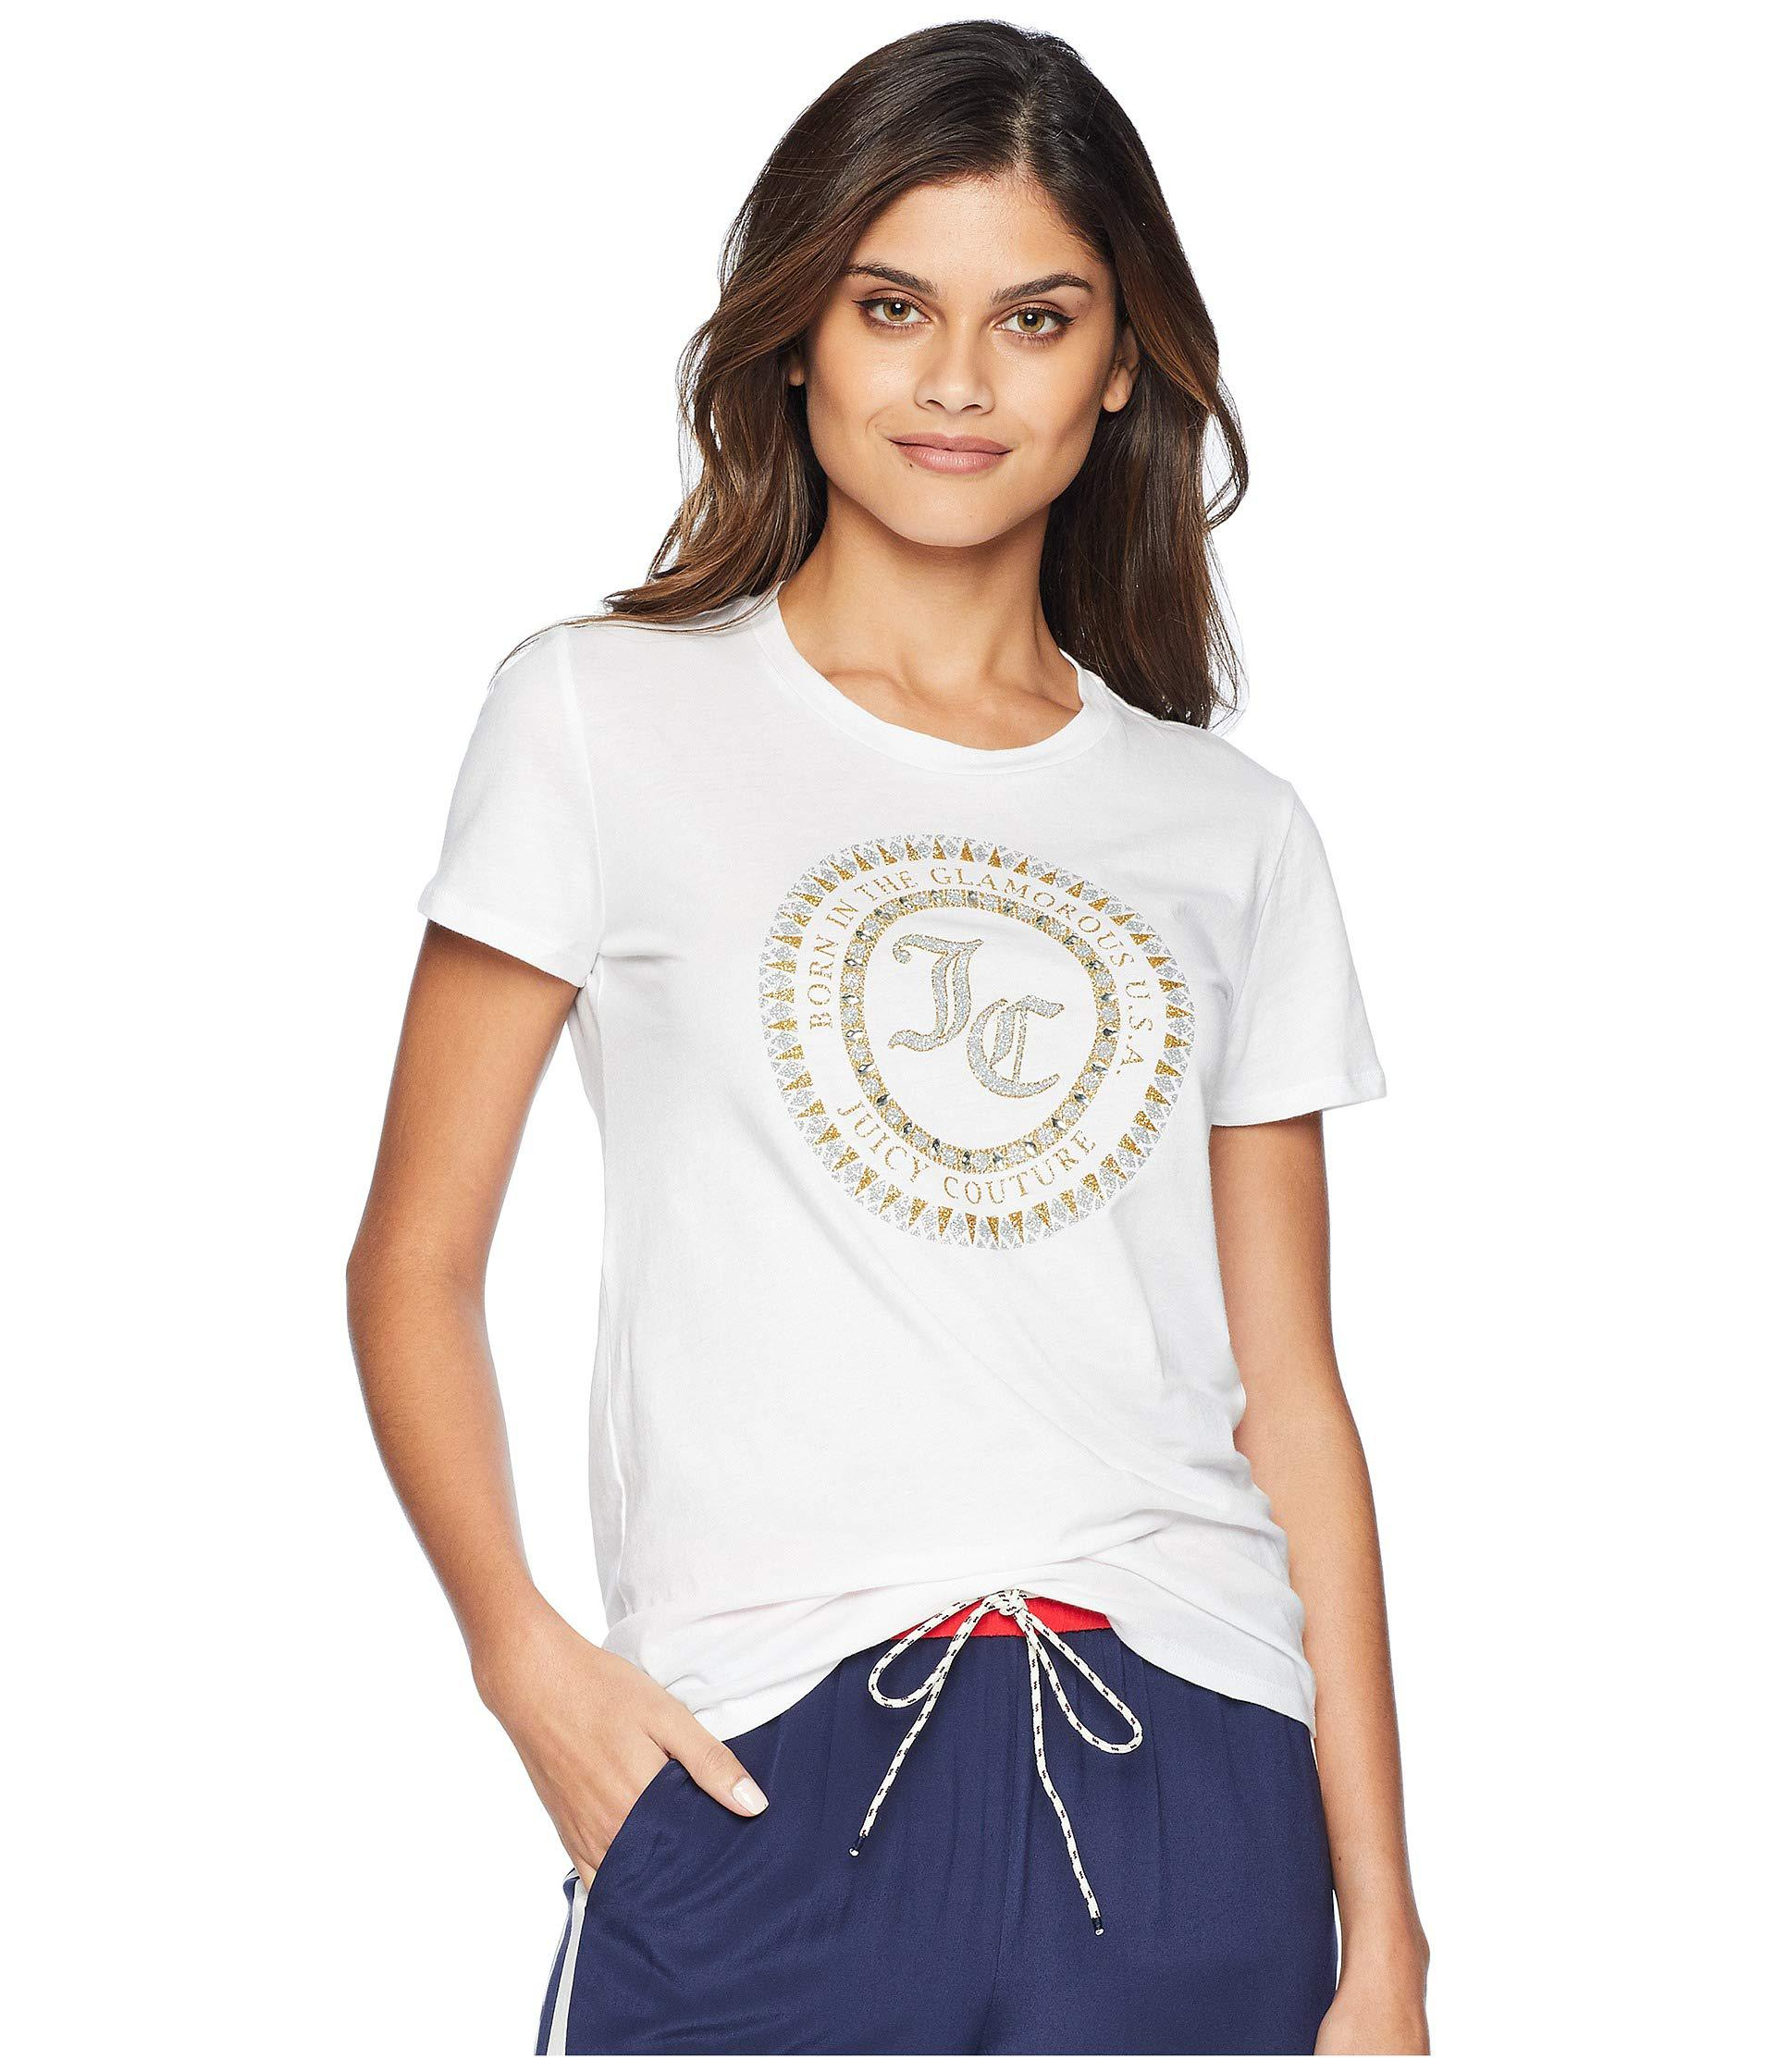 983fc5dd84 Lyst - Juicy Couture Track Seal Of Couture Class Short Sleeve Tee in ...